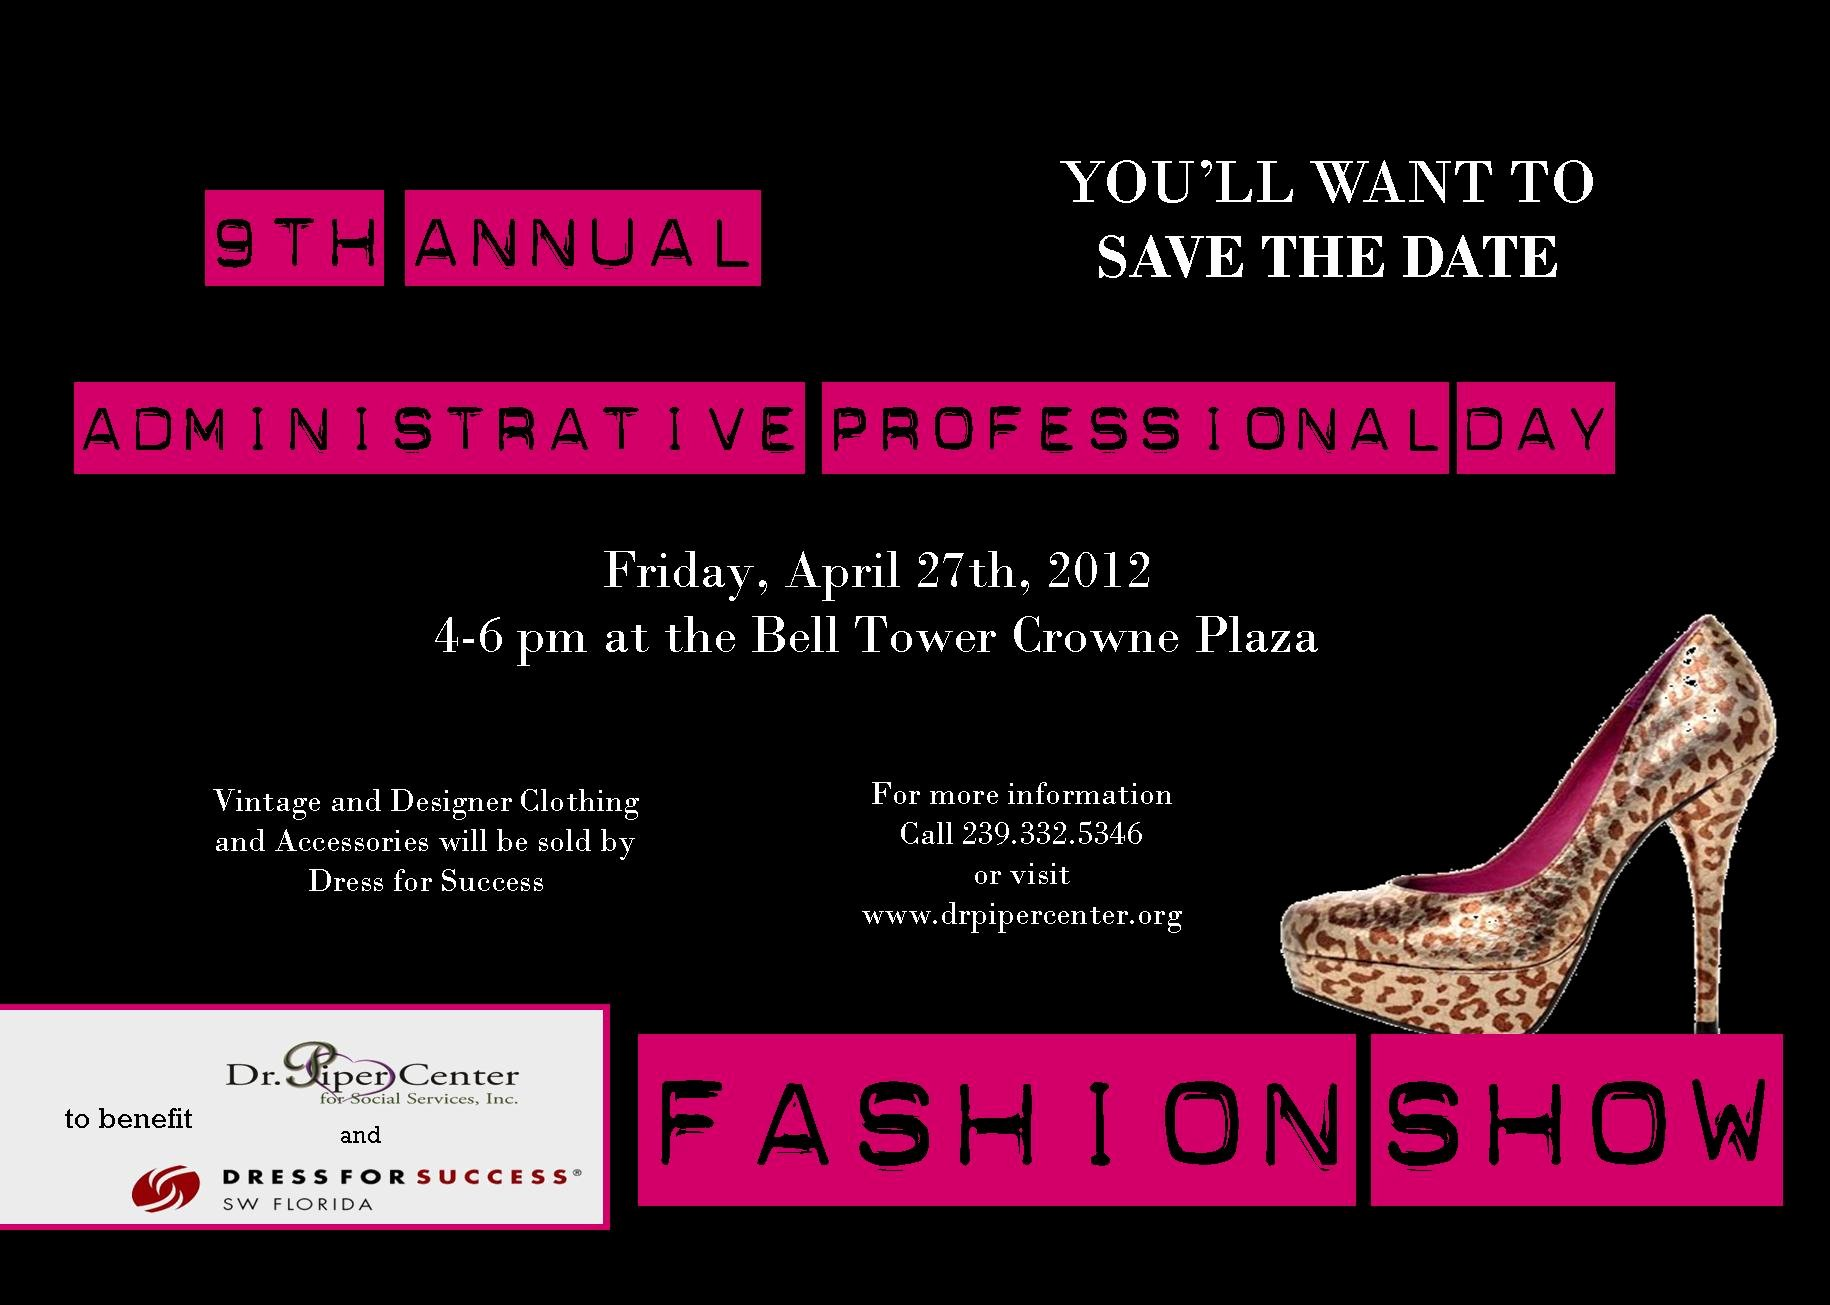 Fashion Show Sponsorship Letter Lovely 9th Annual Administrative Professional Day Fashion Show